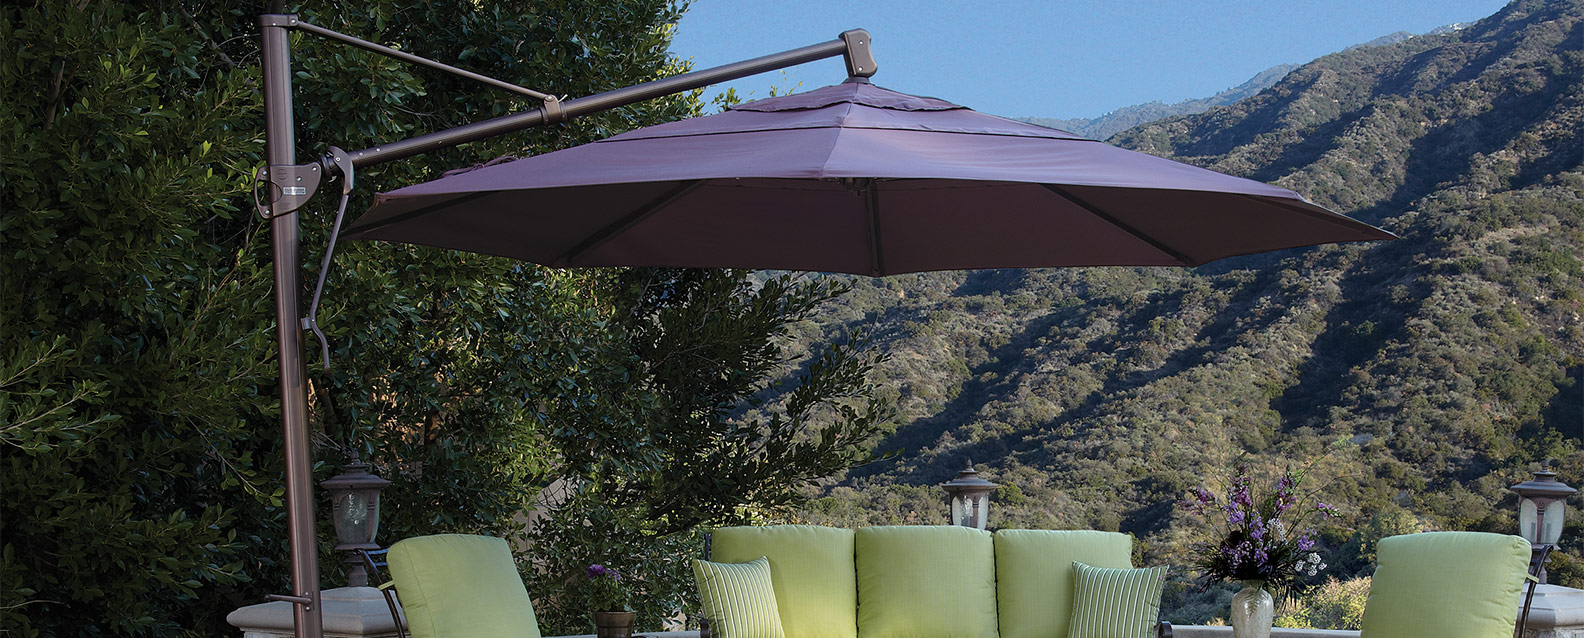 Treasure Garden 11 Octagonal Cantilever Umbrella Summer